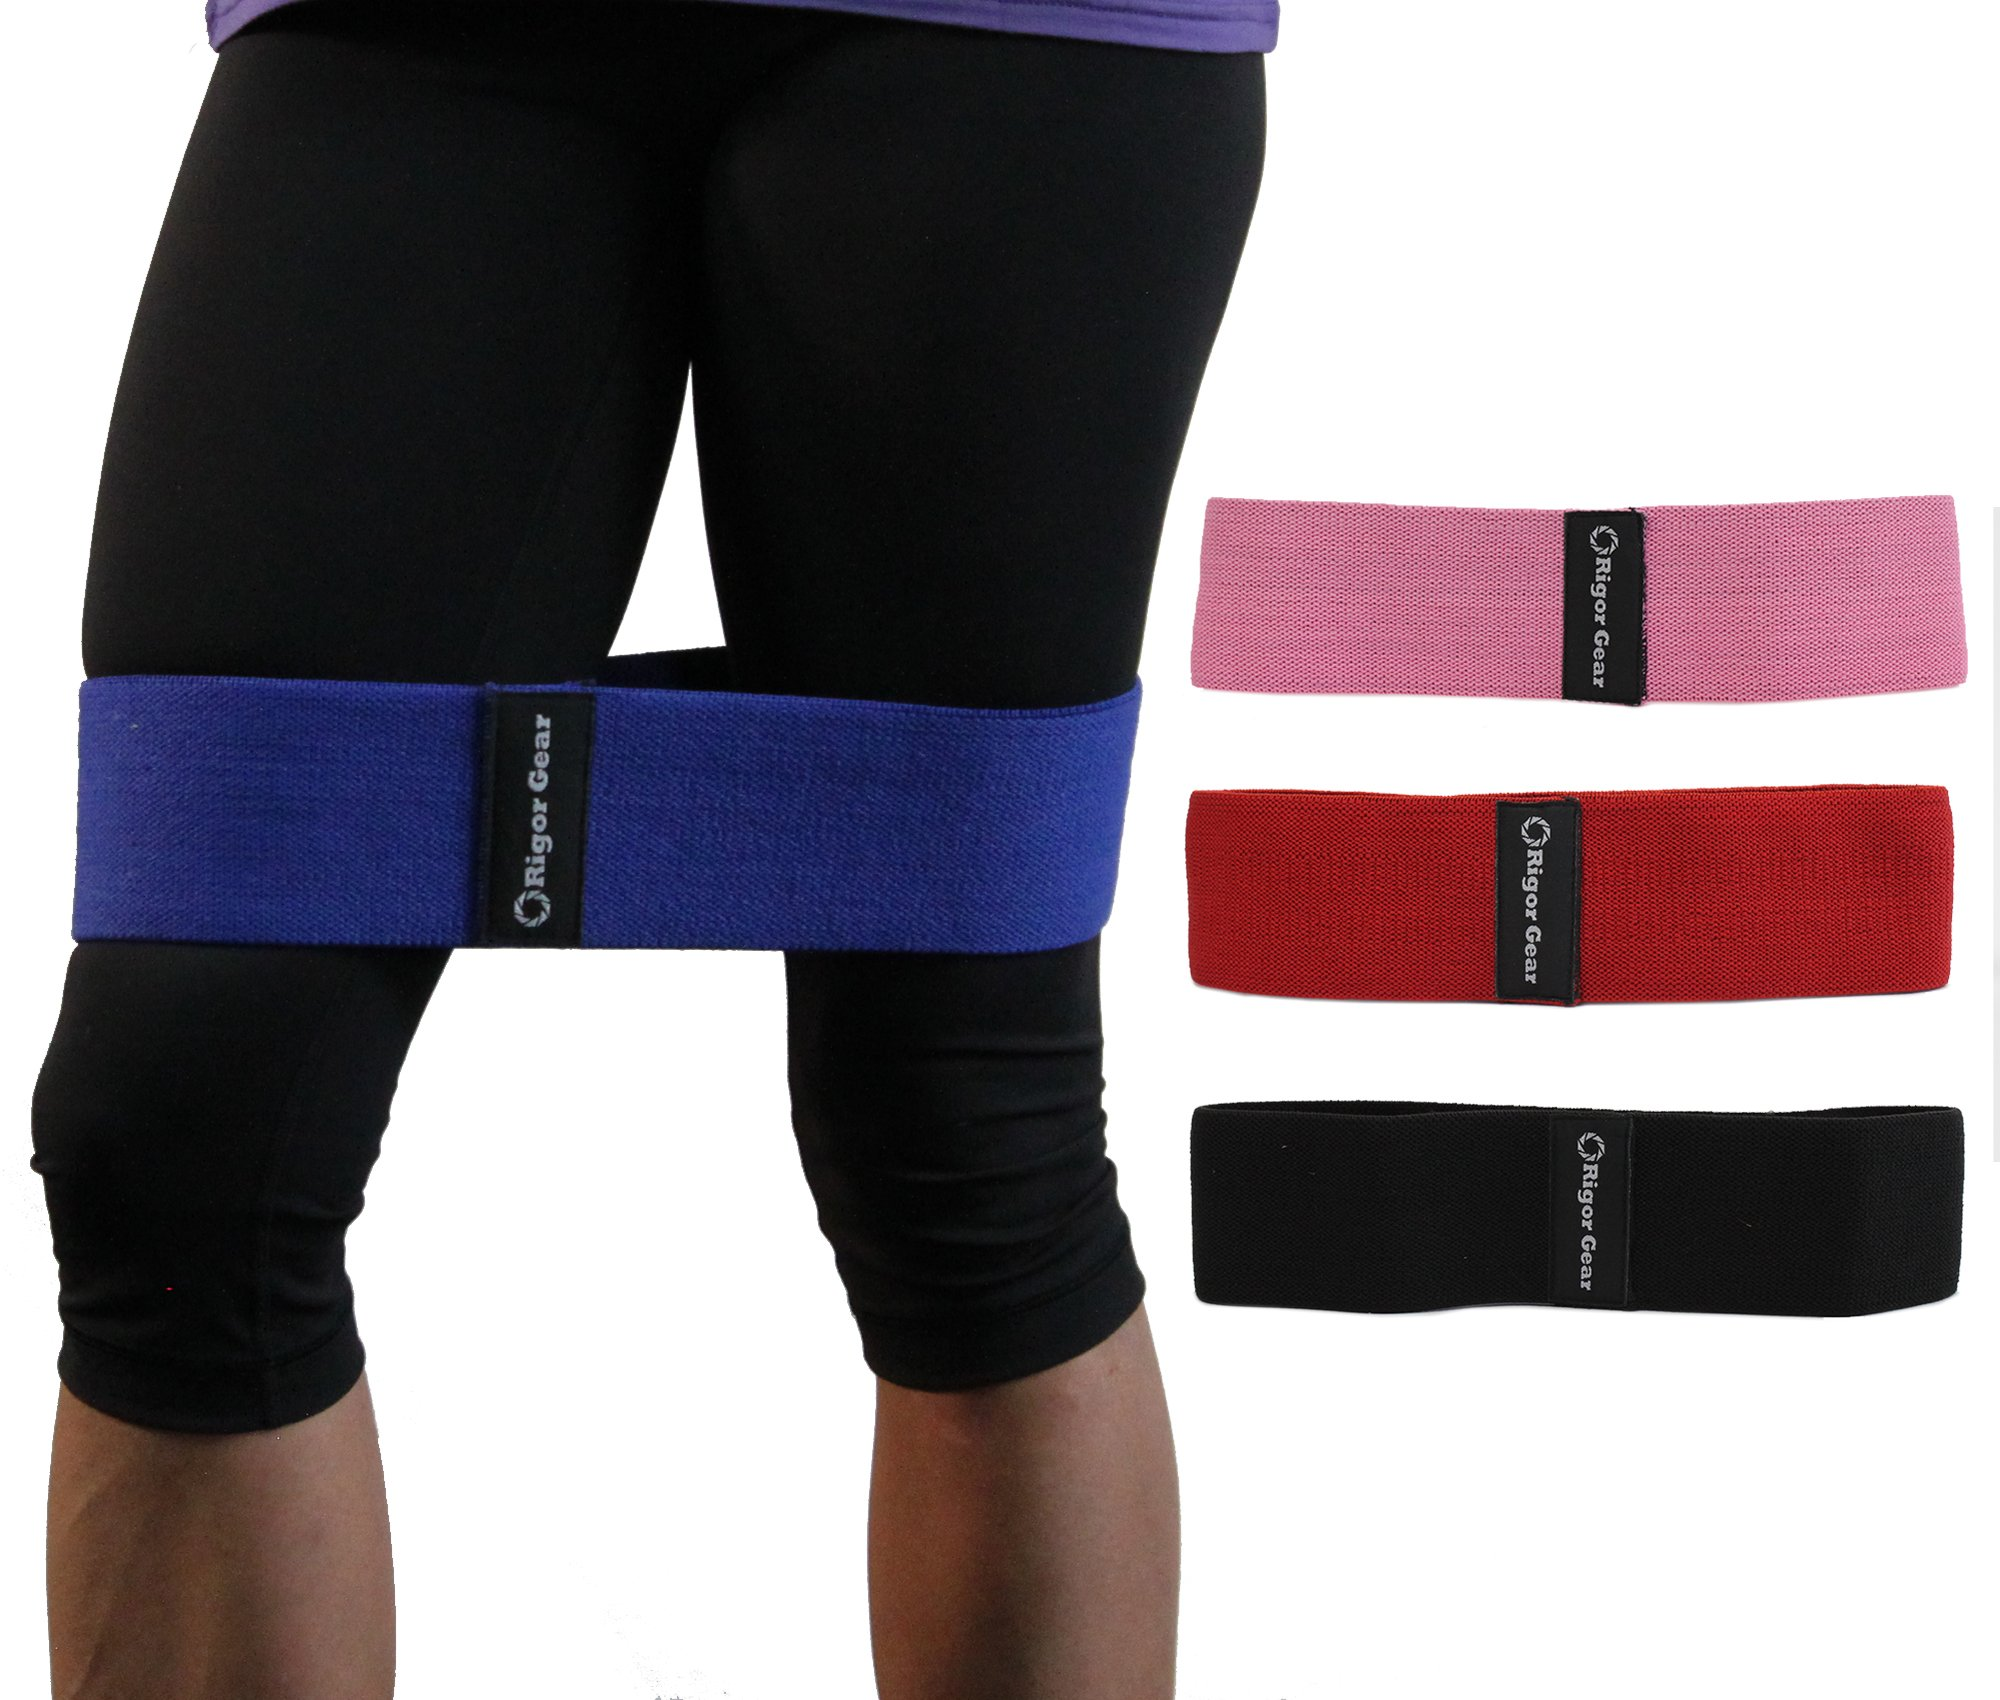 WODsuperstore Resistance Band for Legs & Butt - Grippy Hip Booty Circle Bands to Tone Glute, Thighs & Hips (Red, LG - Medium Resistance)